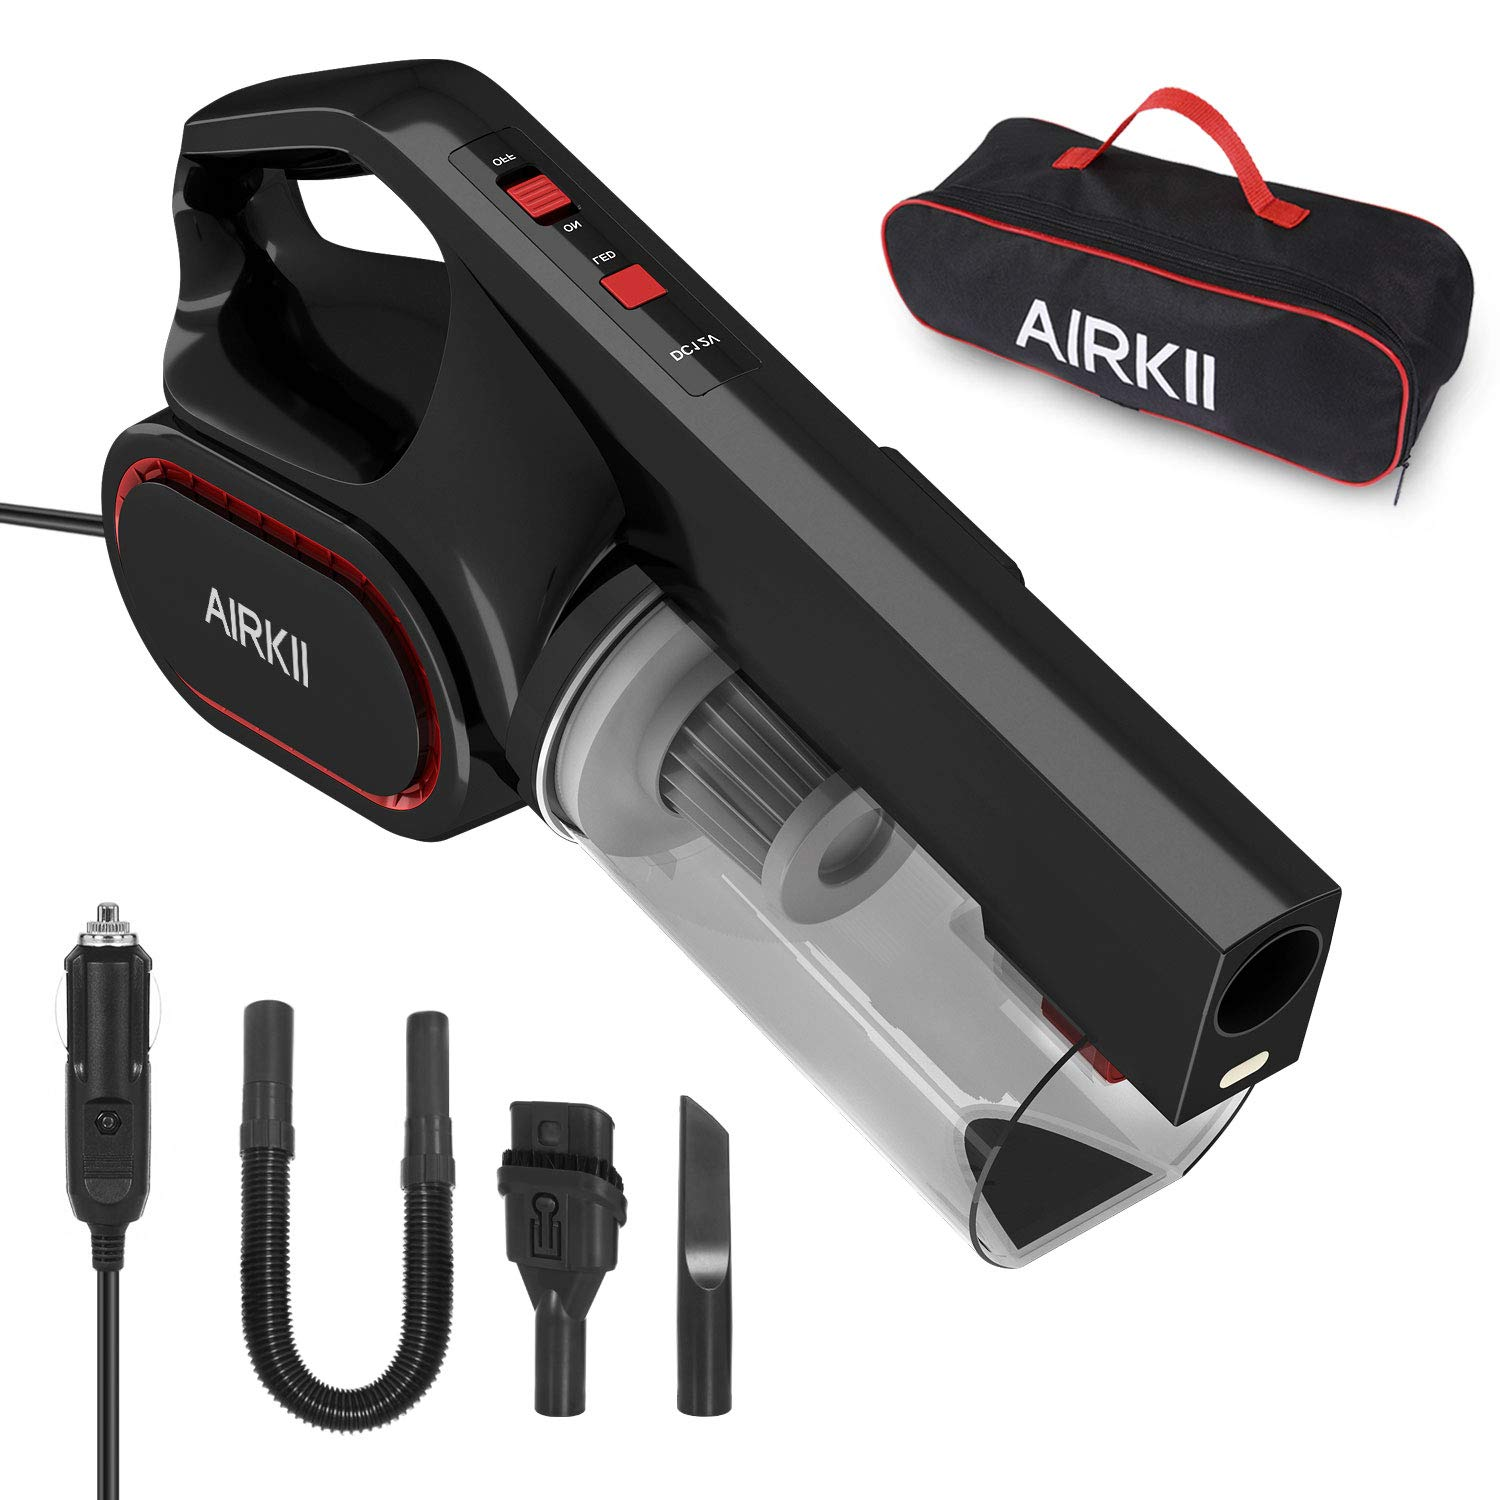 AIRKII Corded Car Vacuum Cleaner High Power 4500PA Washable Stainless Steel HEPA Filter DC 12V 14.8ft Handheld Auto Vacuum Cleaner Car(Powerful Suction)